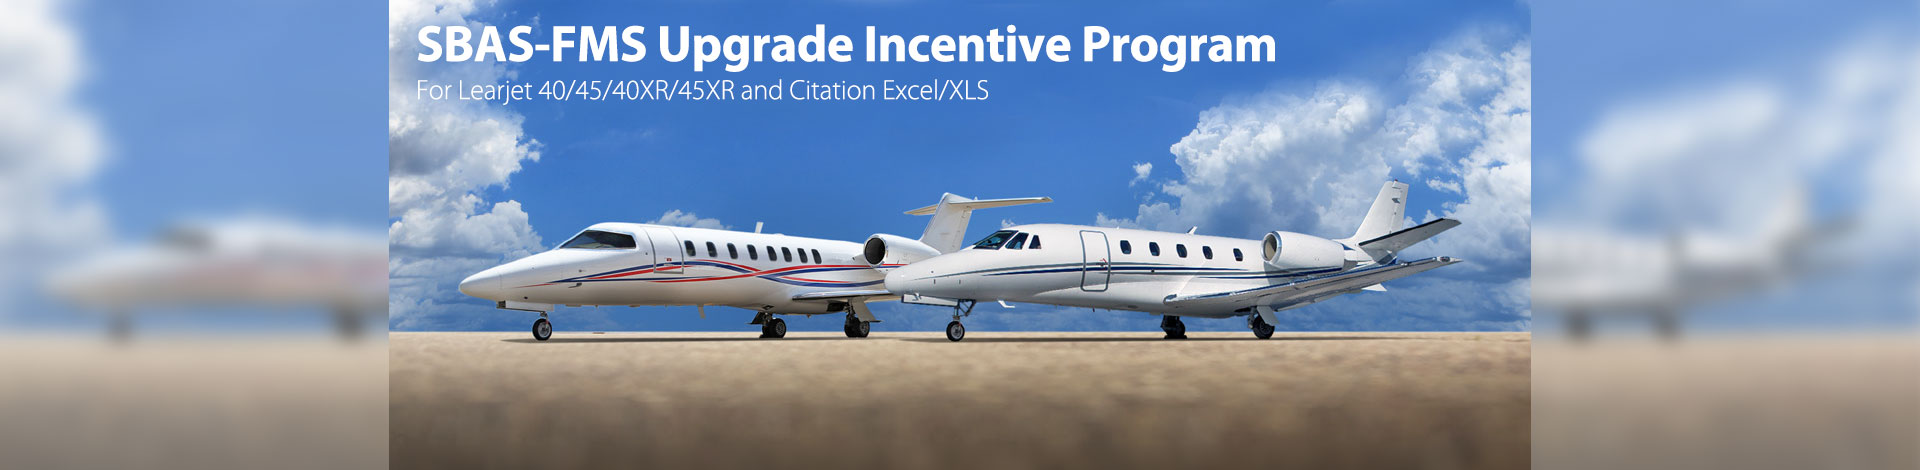 SBAS-FMS Upgrade Incentive Program